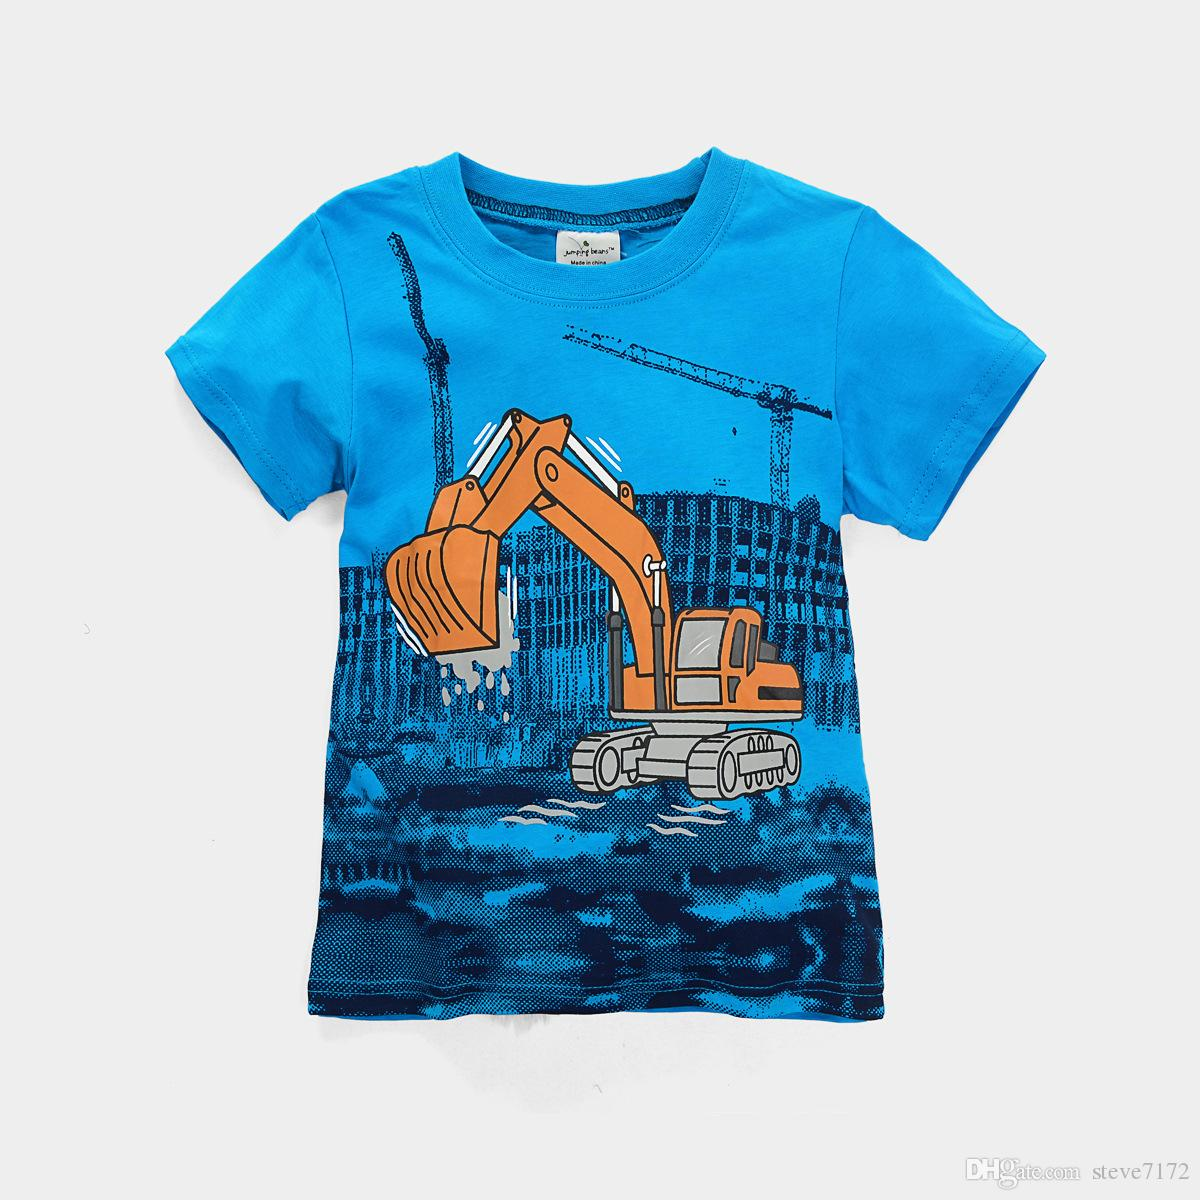 4132b265 Digger Children t-shirts jumping beans boys clothes short sleeve tee shirts  tops kids polo shirt tops 2-6years baby boy clothes